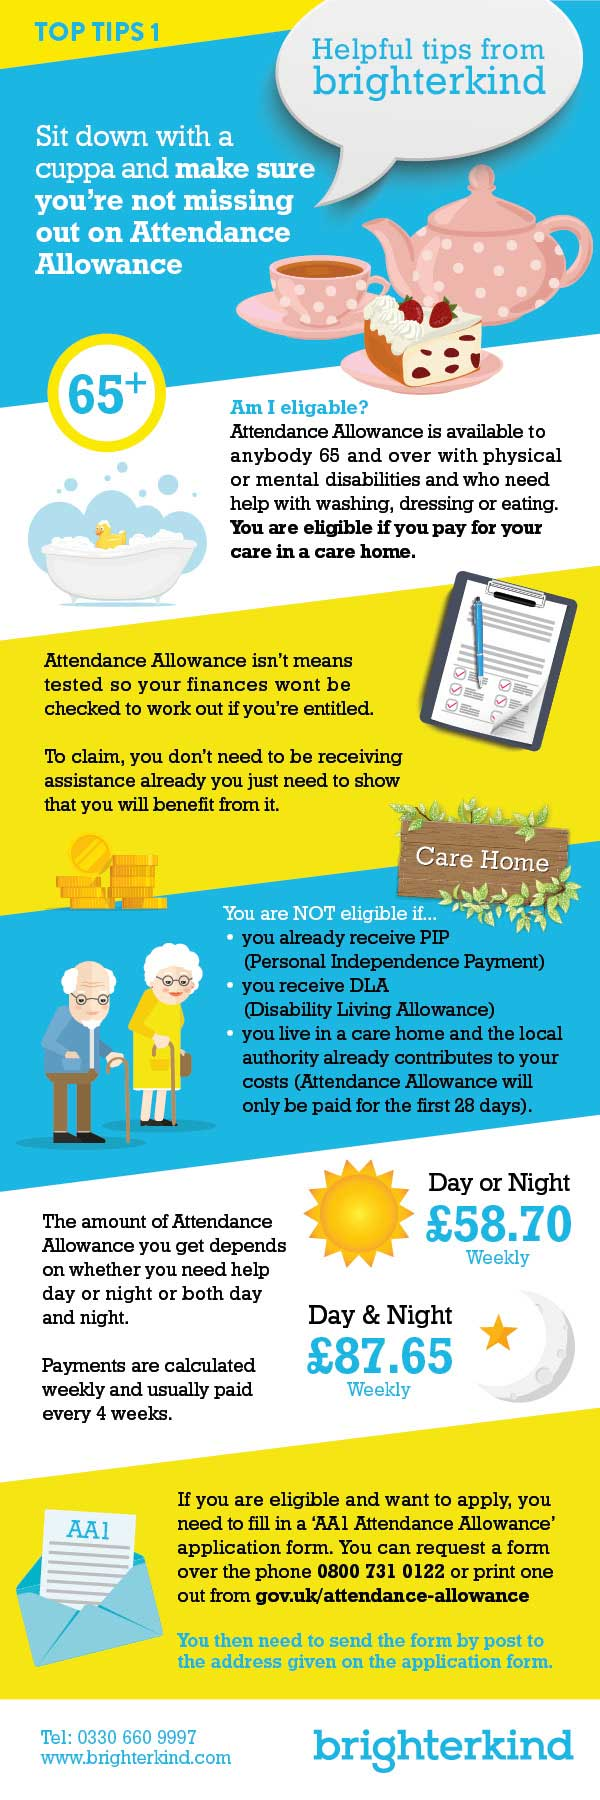 Make sure you don't miss out on Attendance Allowance